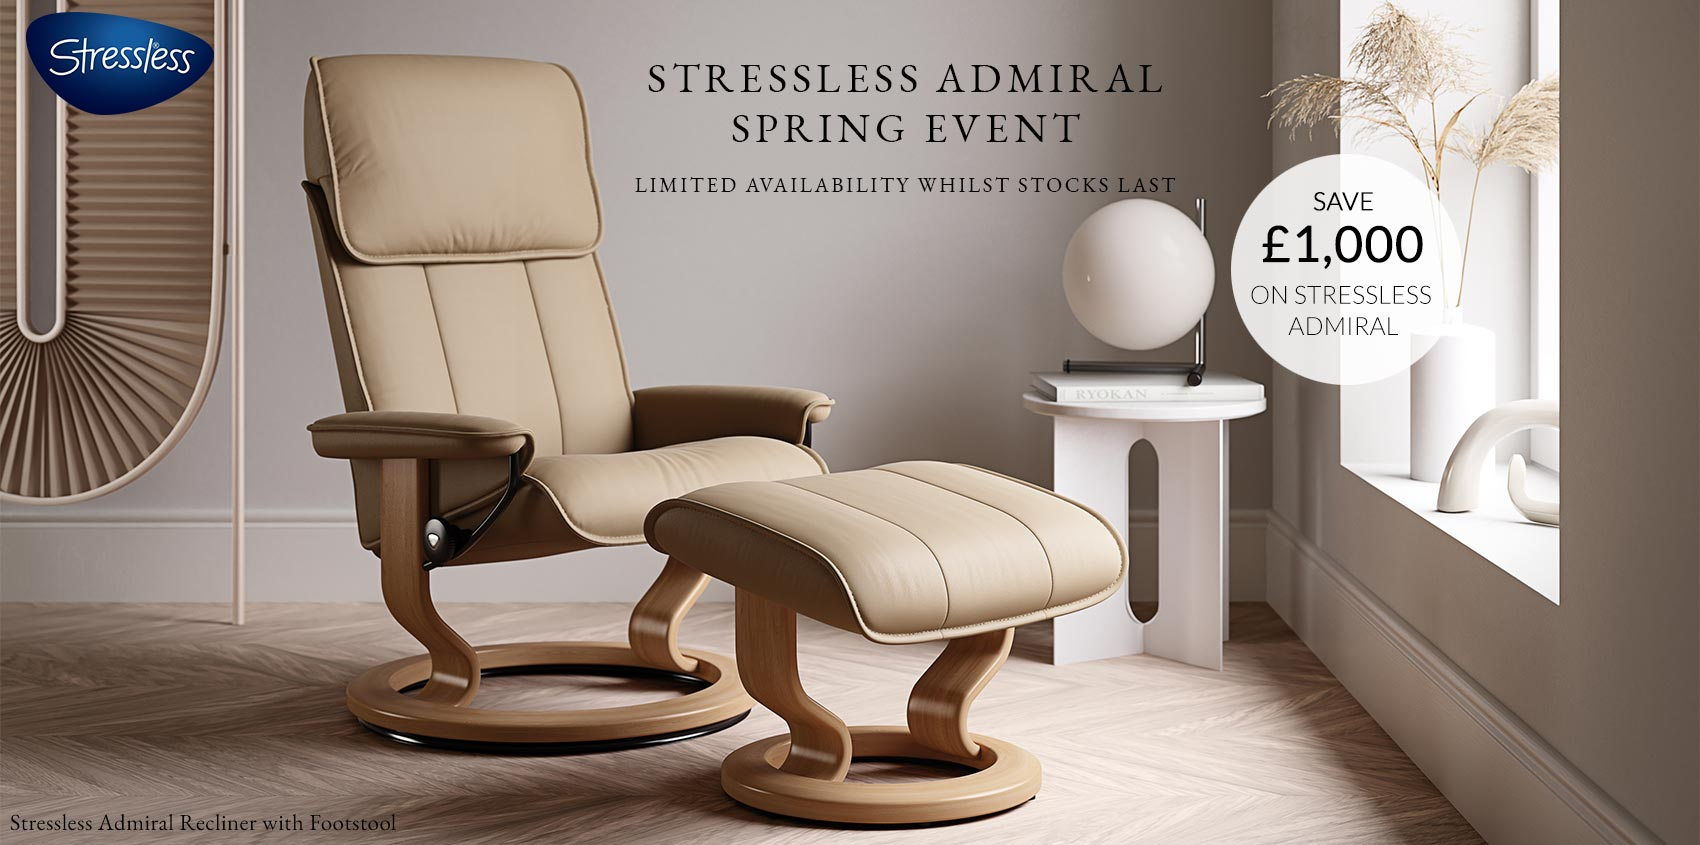 Stressless Admiral Promotion 2021